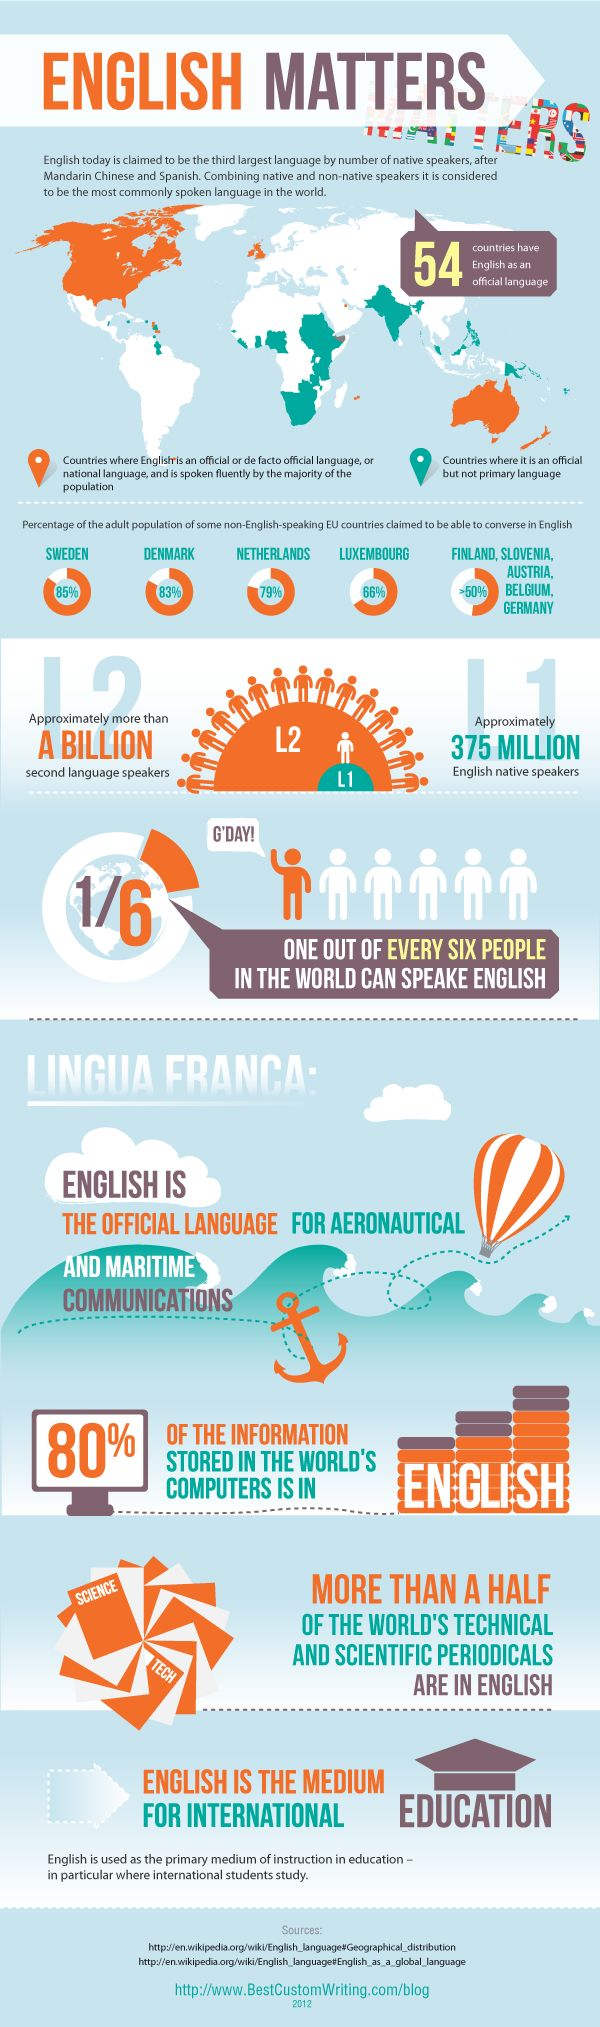 English matters #infographicEducation English, Educationlearn English, English Matter, International Business, Matter Infographic, Education Infographic, English Education, Business English Teaching, English Languages